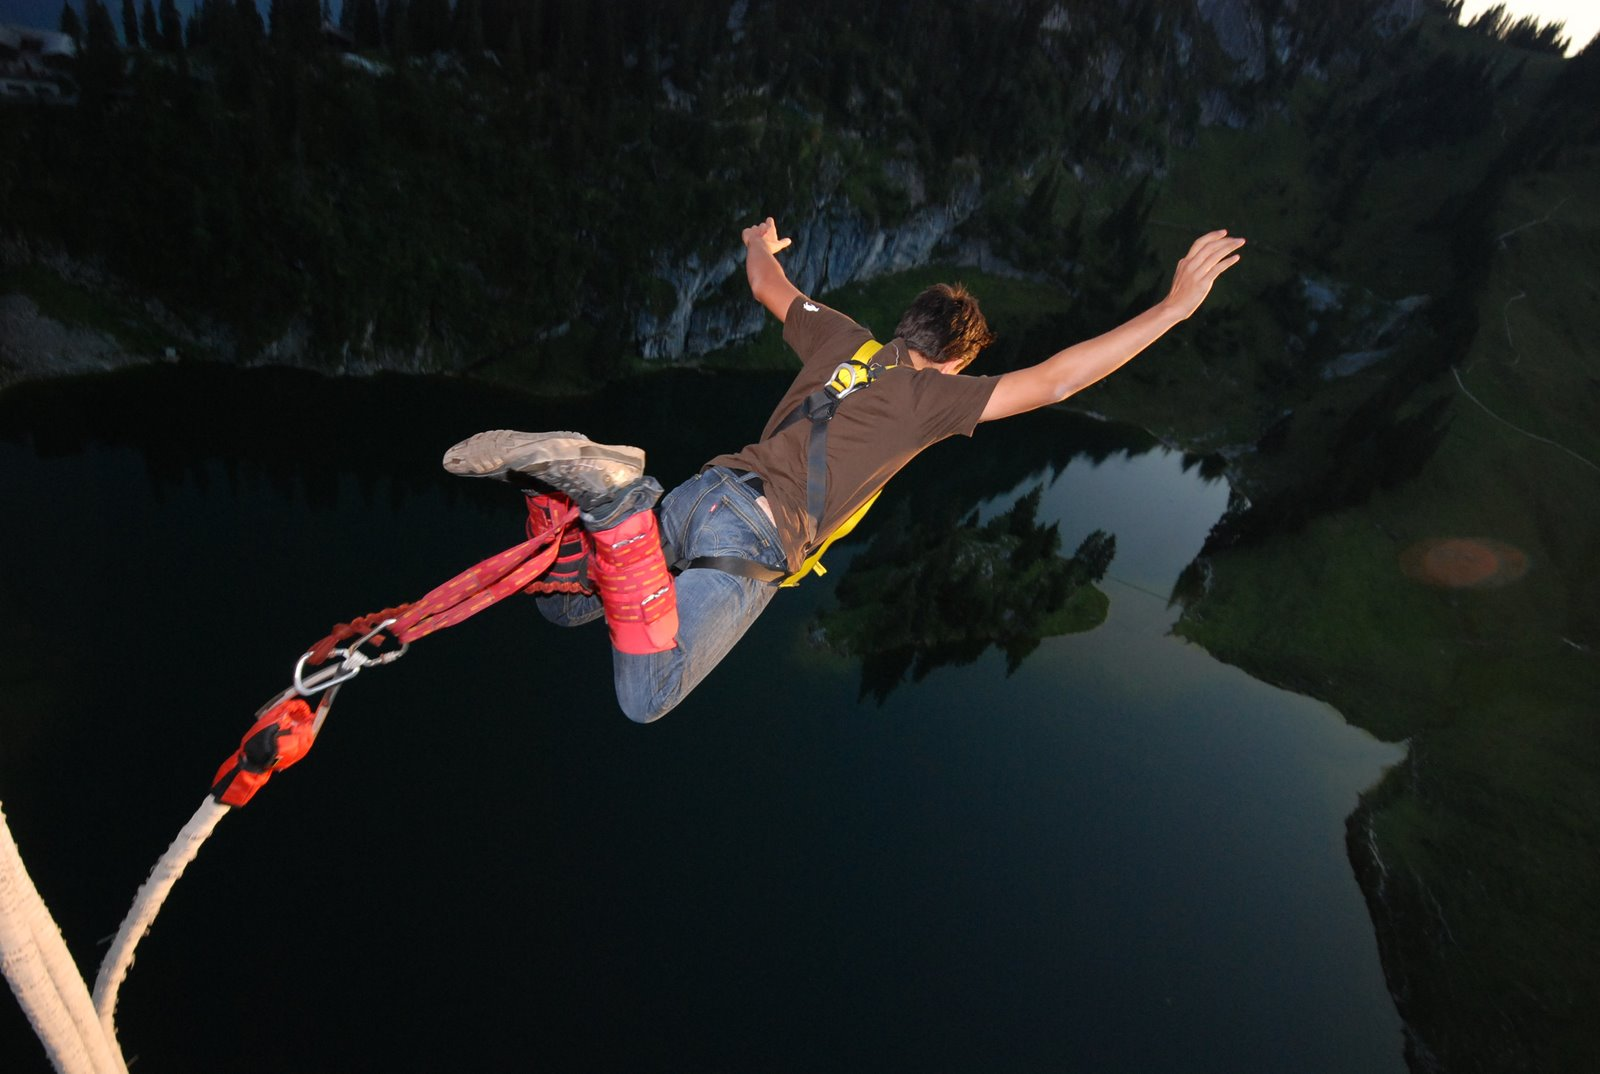 activities-Bungee_Jumping_From_A_Cable_Car-31365088466